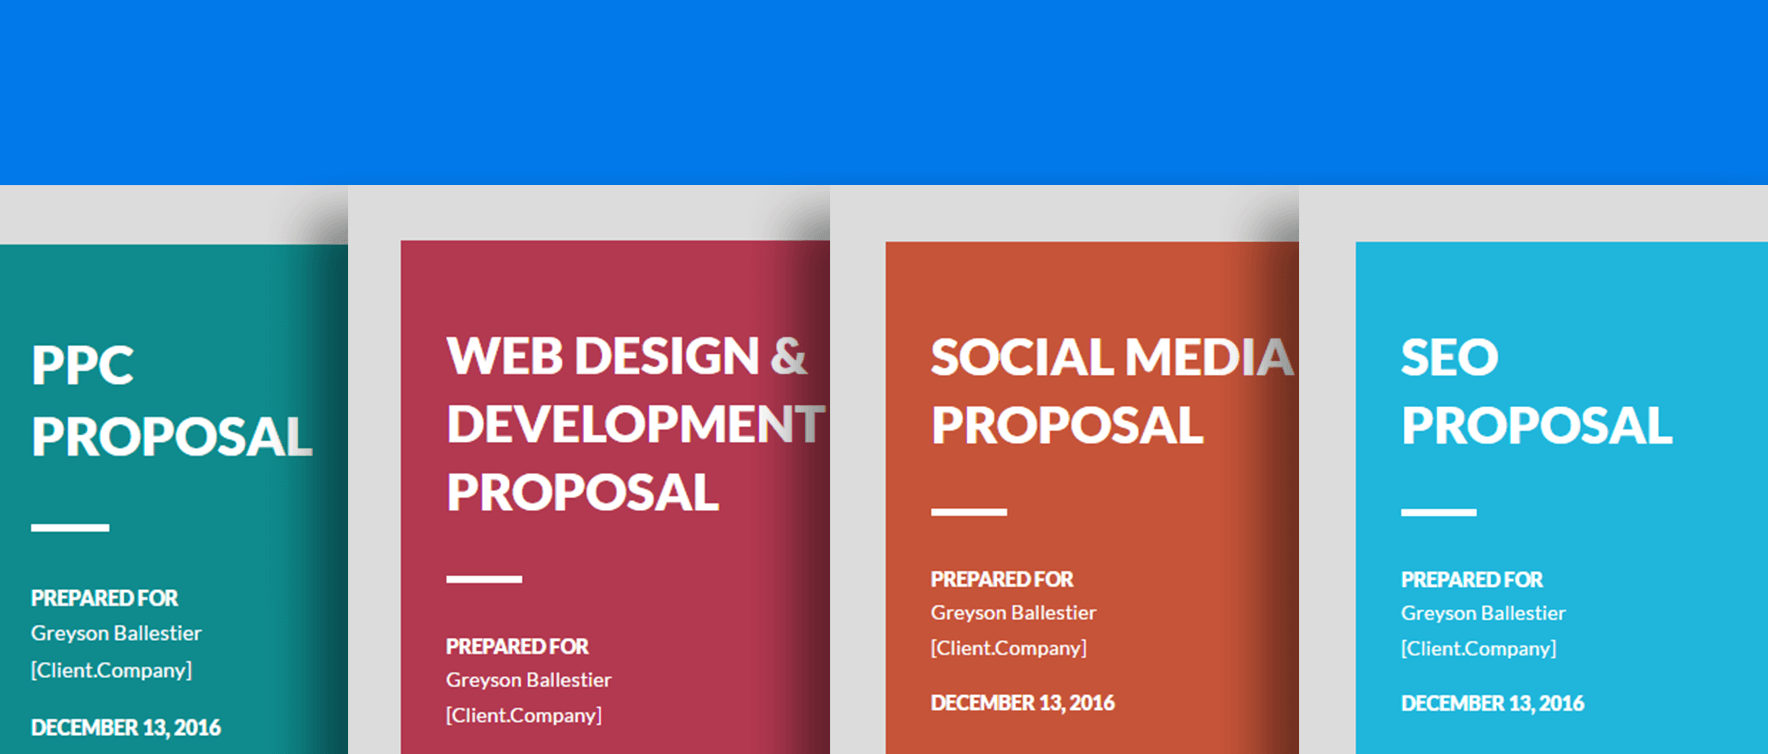 Proposals-SEO-Web-Design-Social-Media-PPC